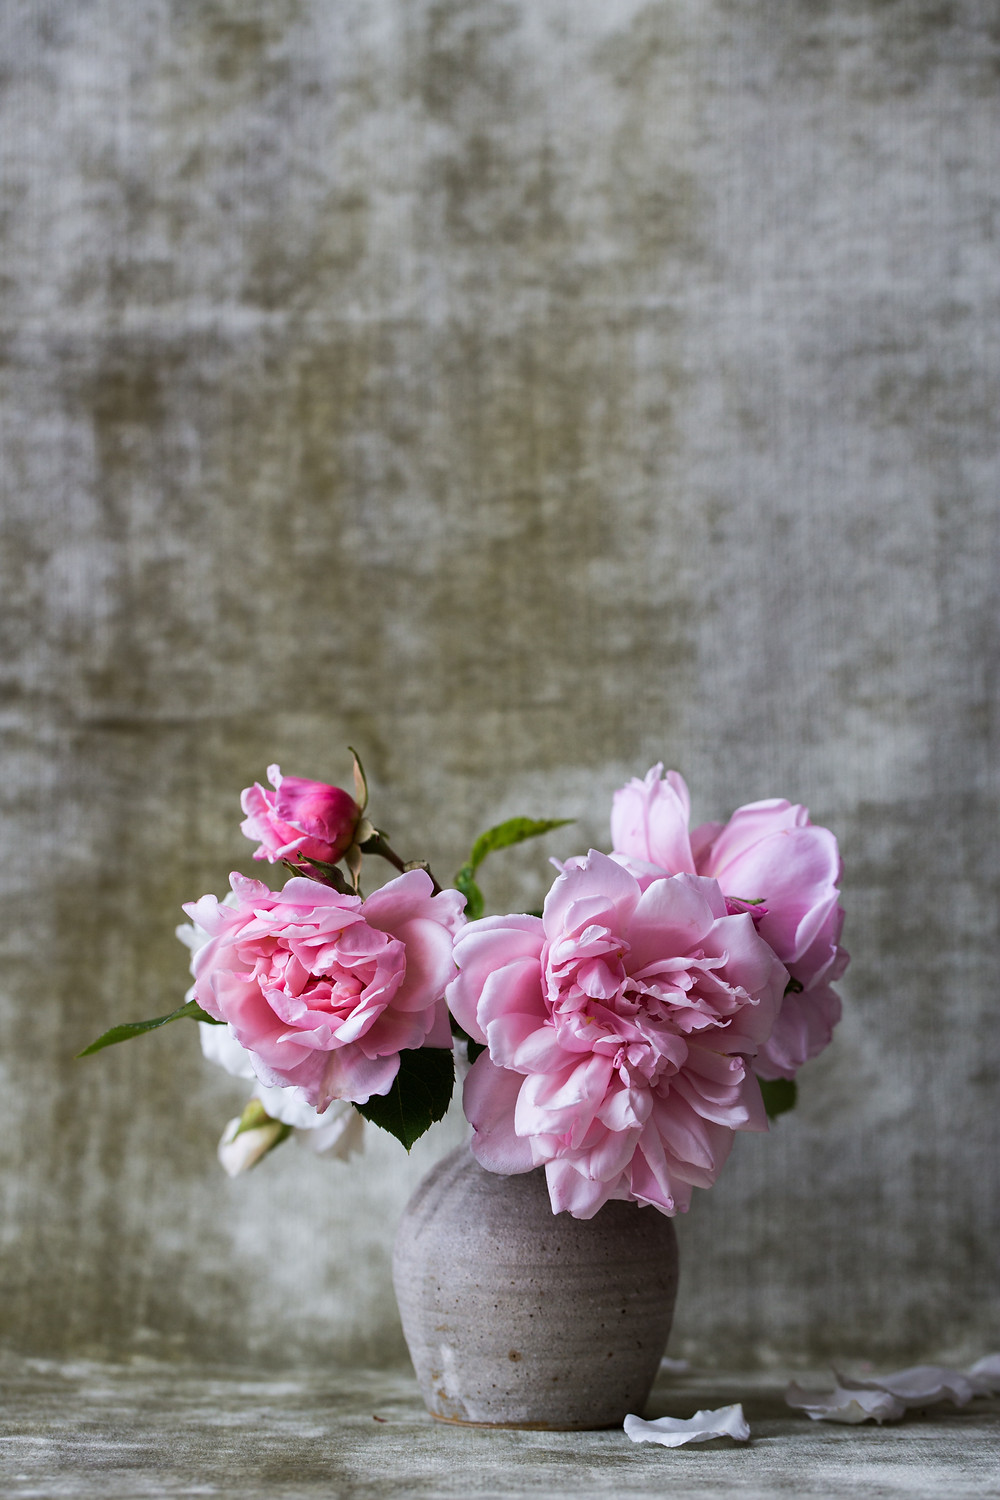 Beautifully-styled vase of pink flowers